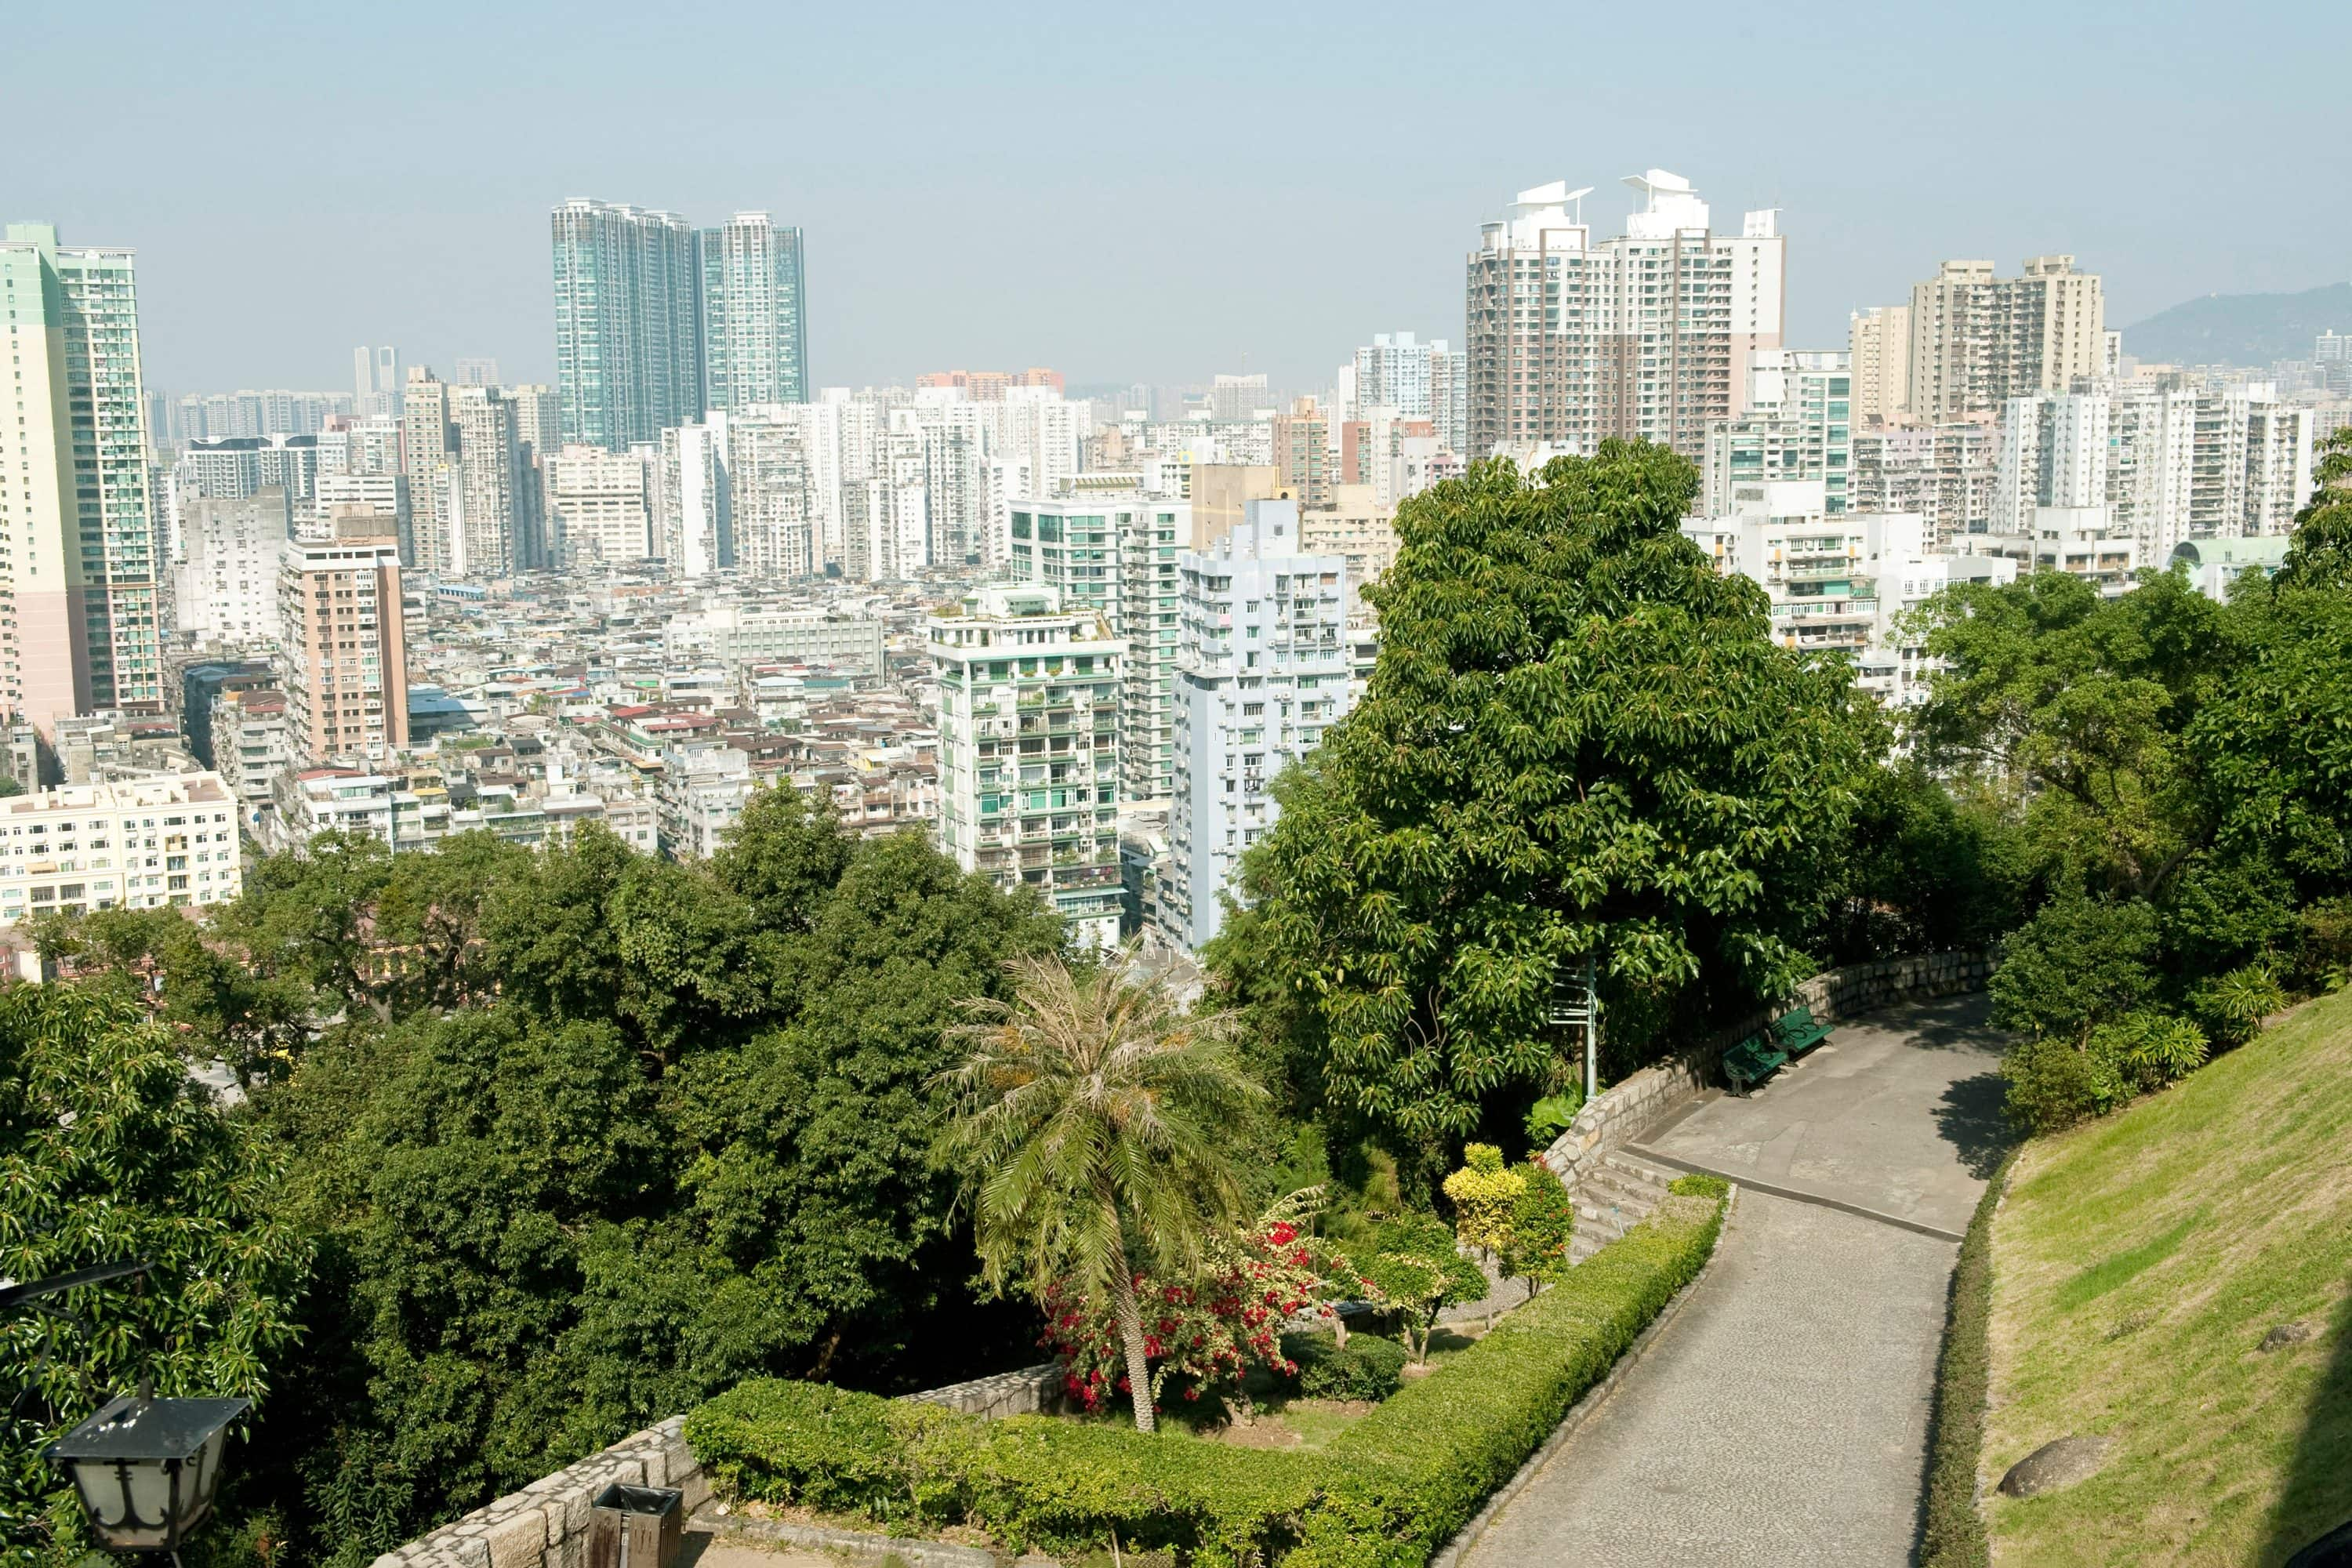 View of the cityscape from the fortress, Macau